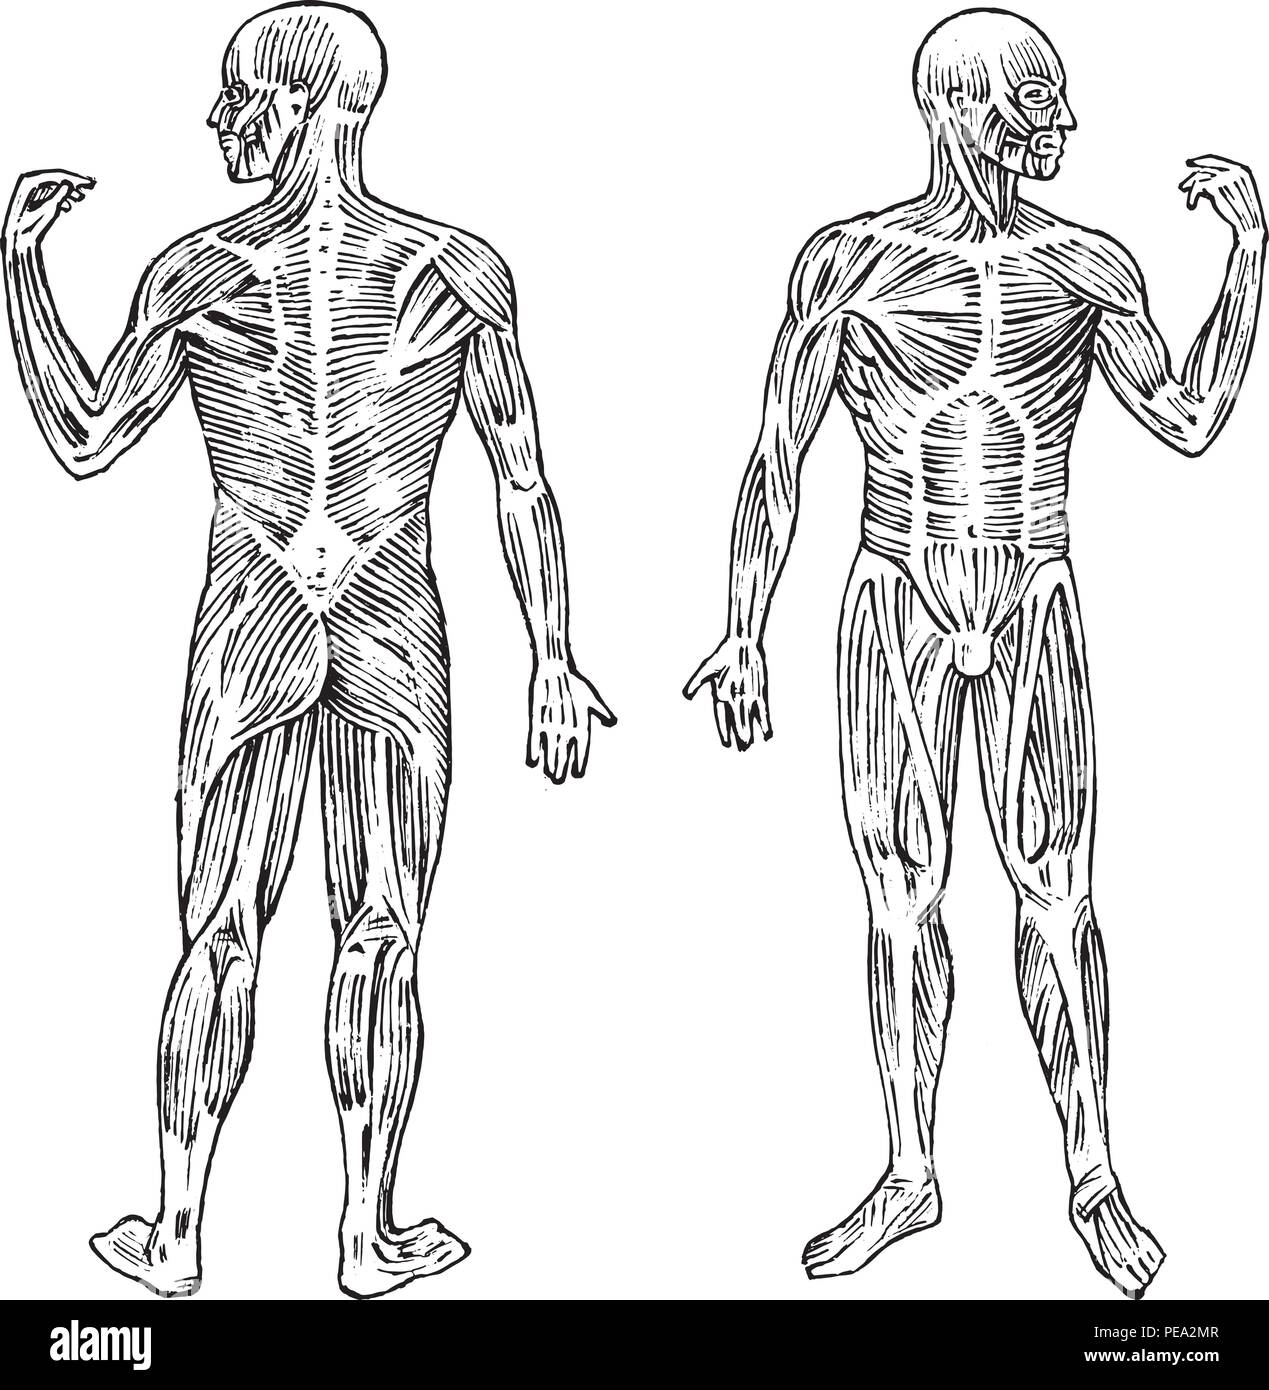 Man Human Circulatory System Stockfotos & Man Human Circulatory ...